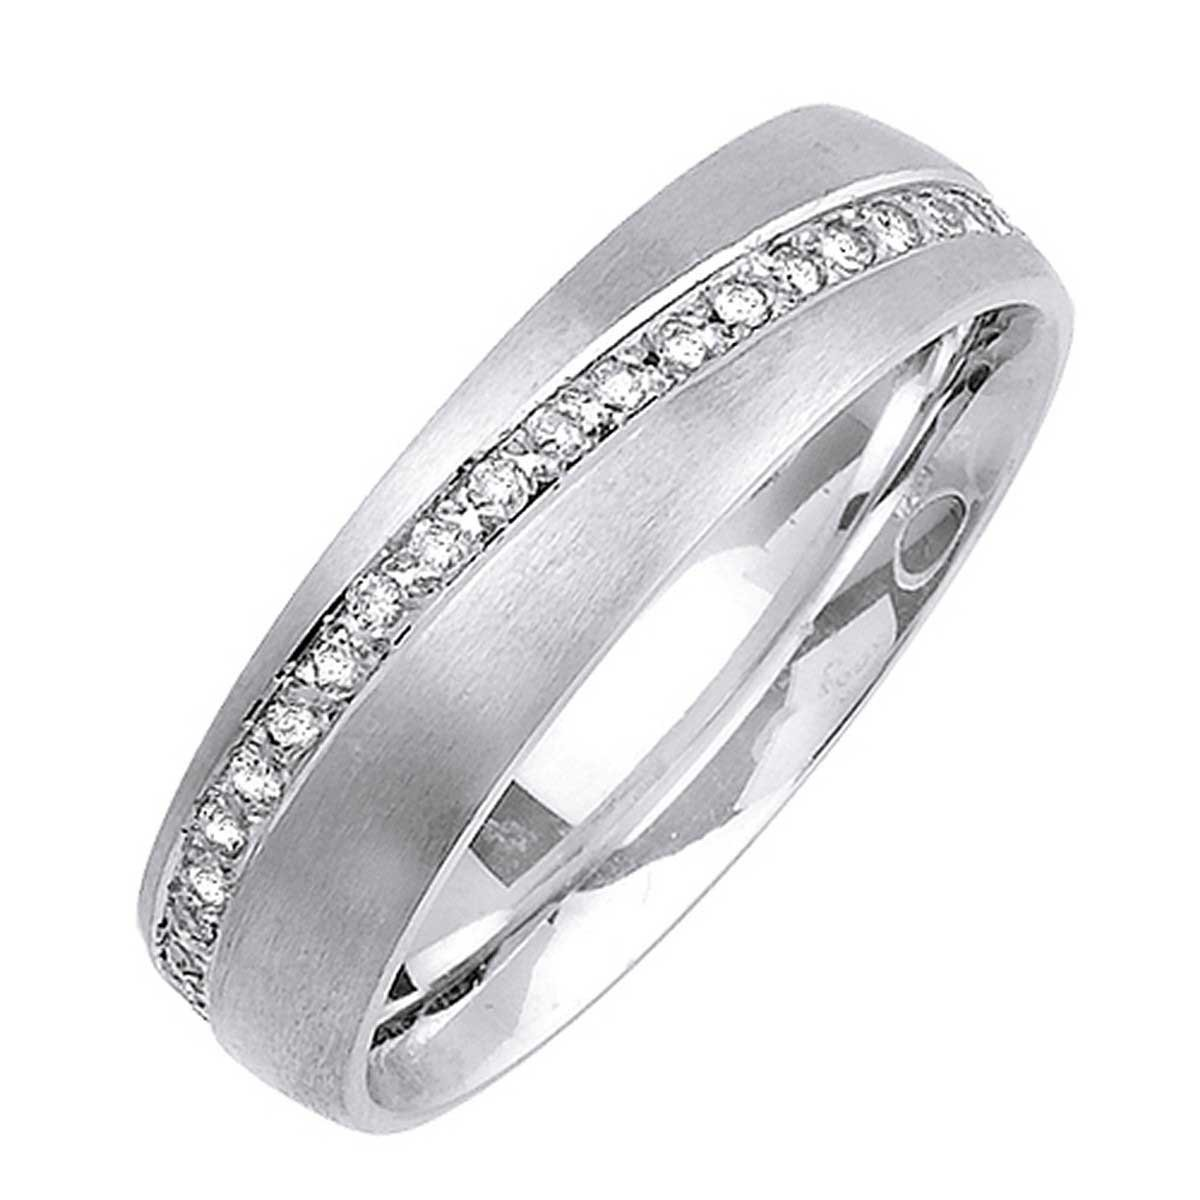 0.48ct TDW White Diamonds 18K White Gold Love Knot Men's Wedding Band (G-H, SI1-SI2) (6mm) Size-9.5c2